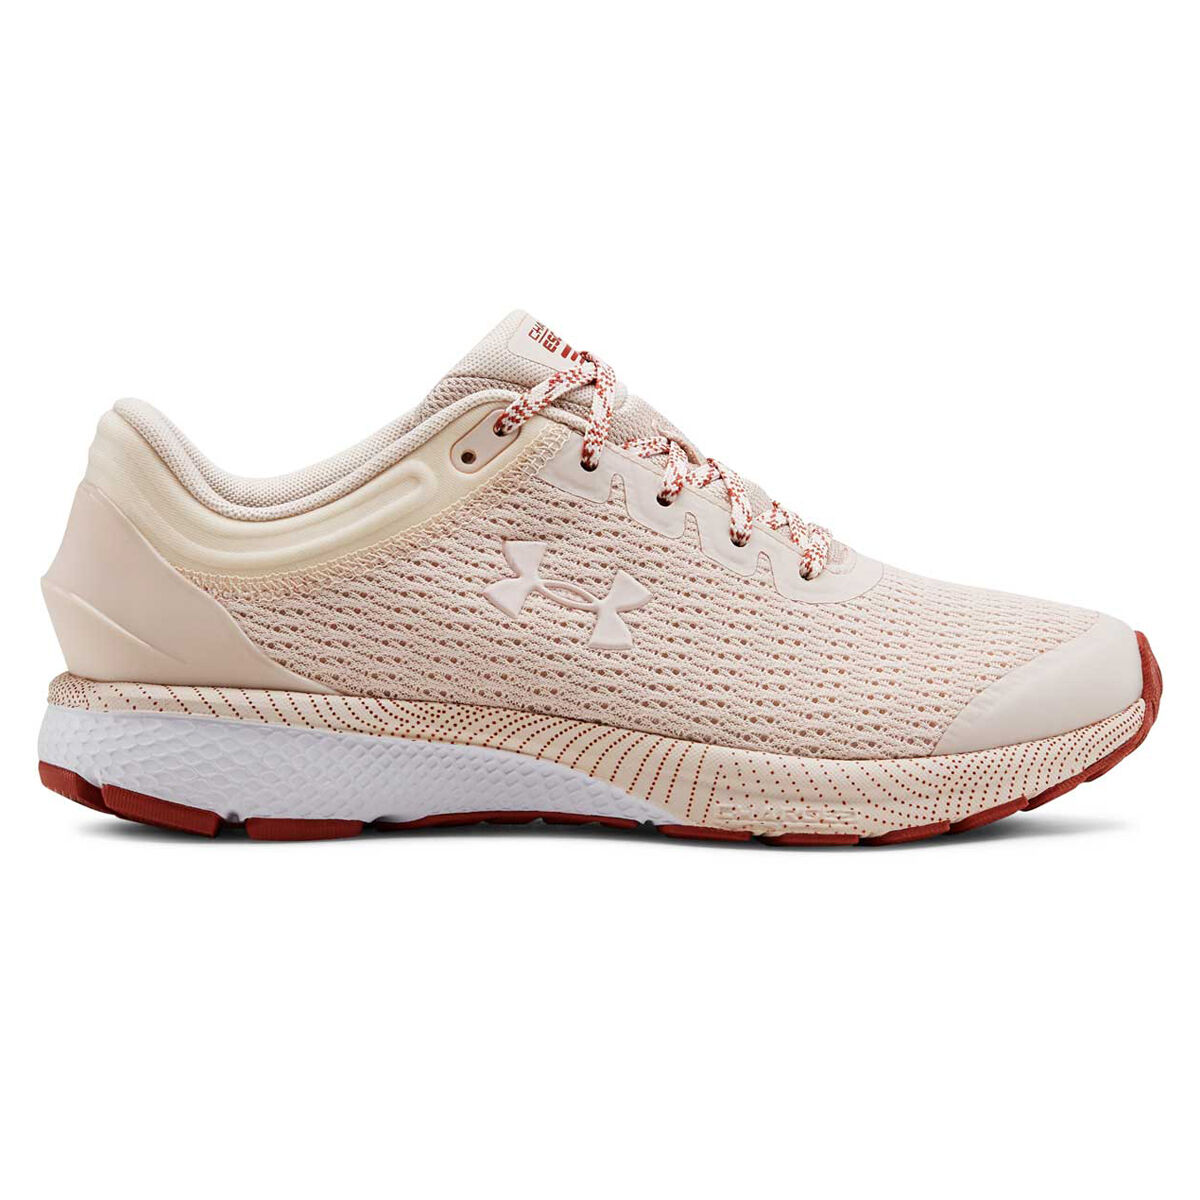 Under Armour Charged Escape 3 Womens